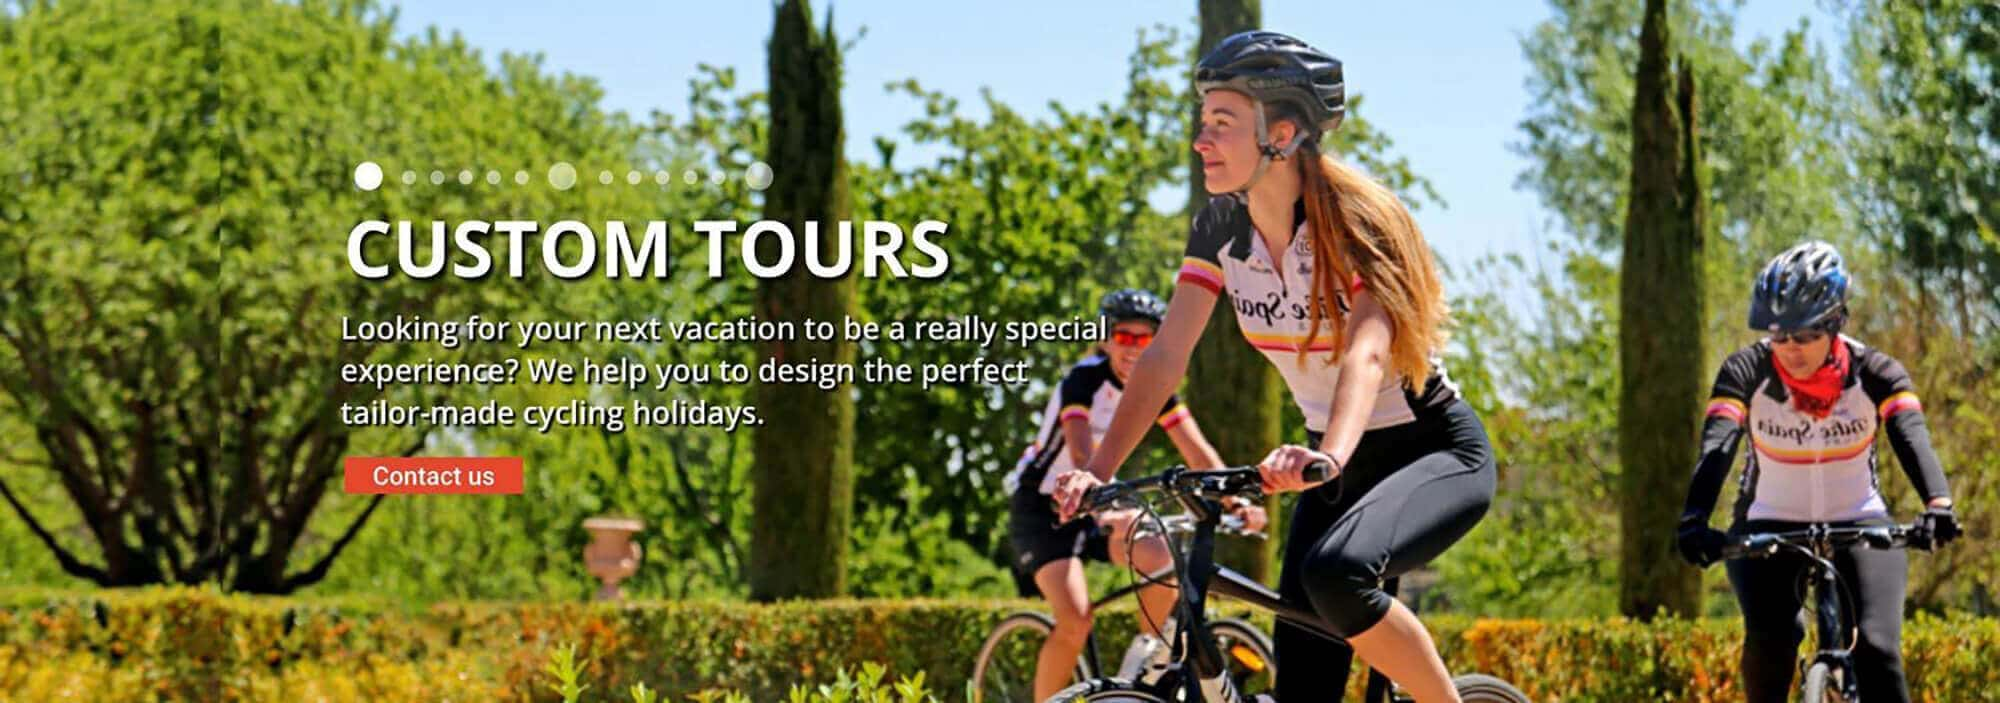 Bike Spain Custom Tours